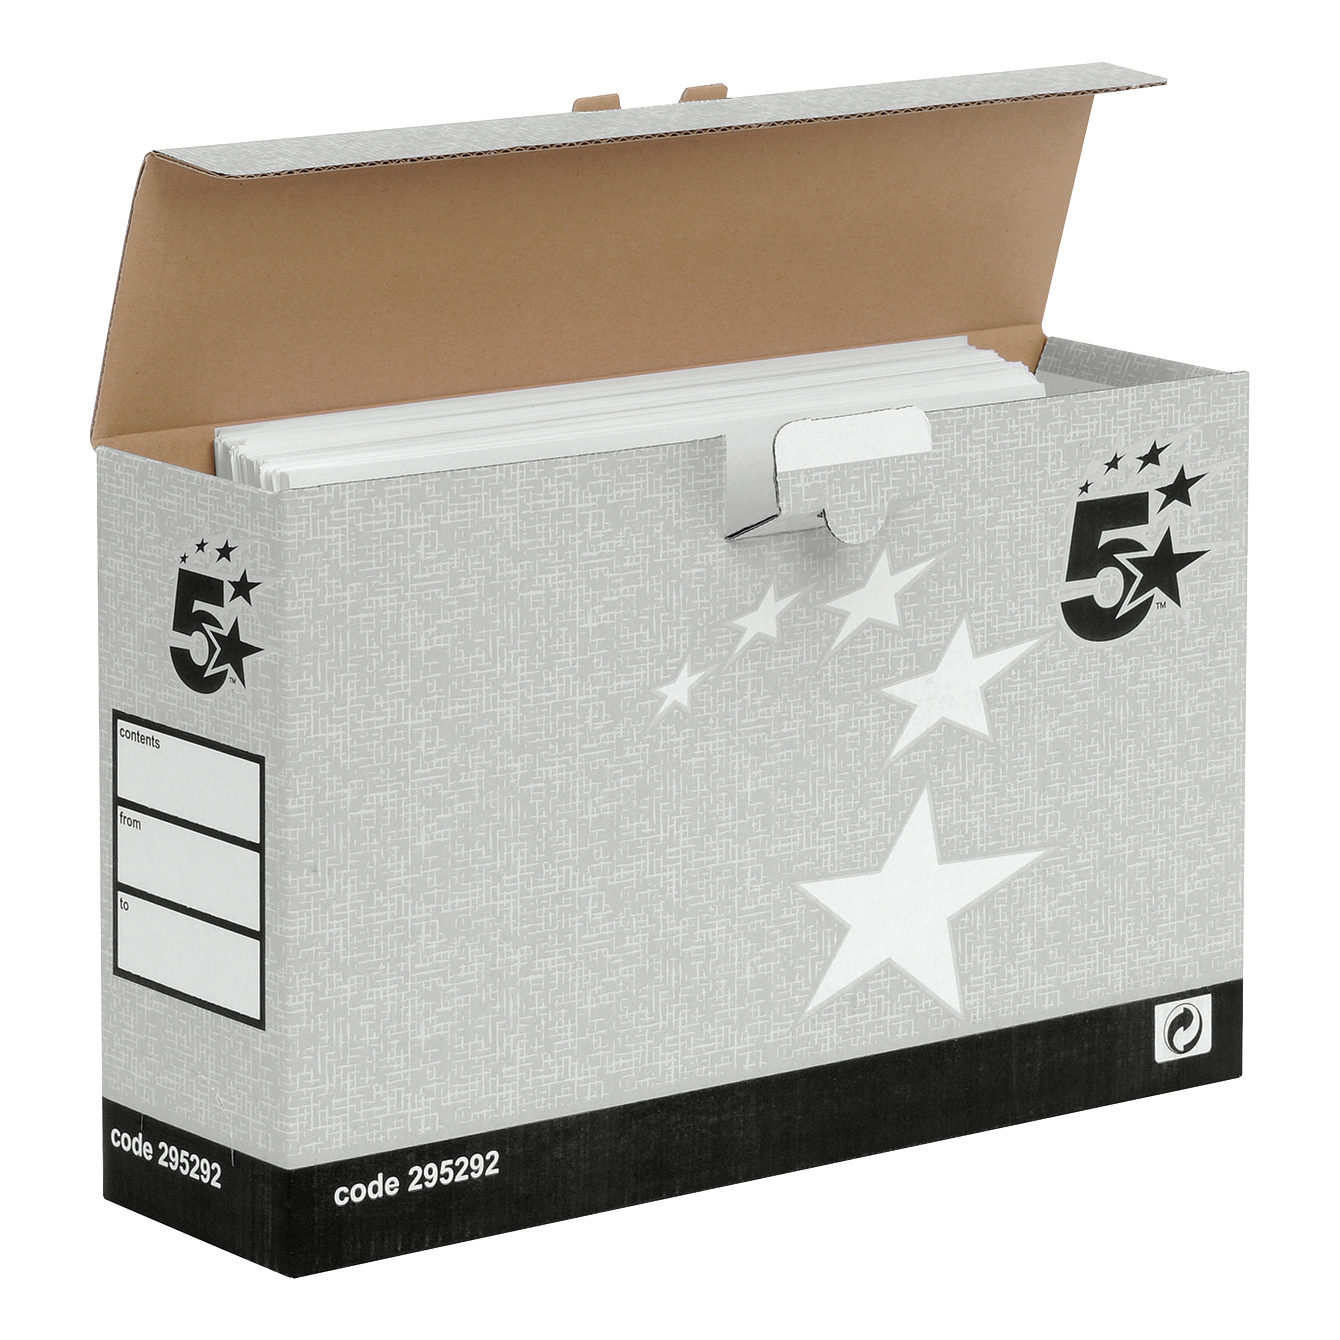 5 Star Facilities Transfer Case Hinged Lid Foolscap Grey Pack 10